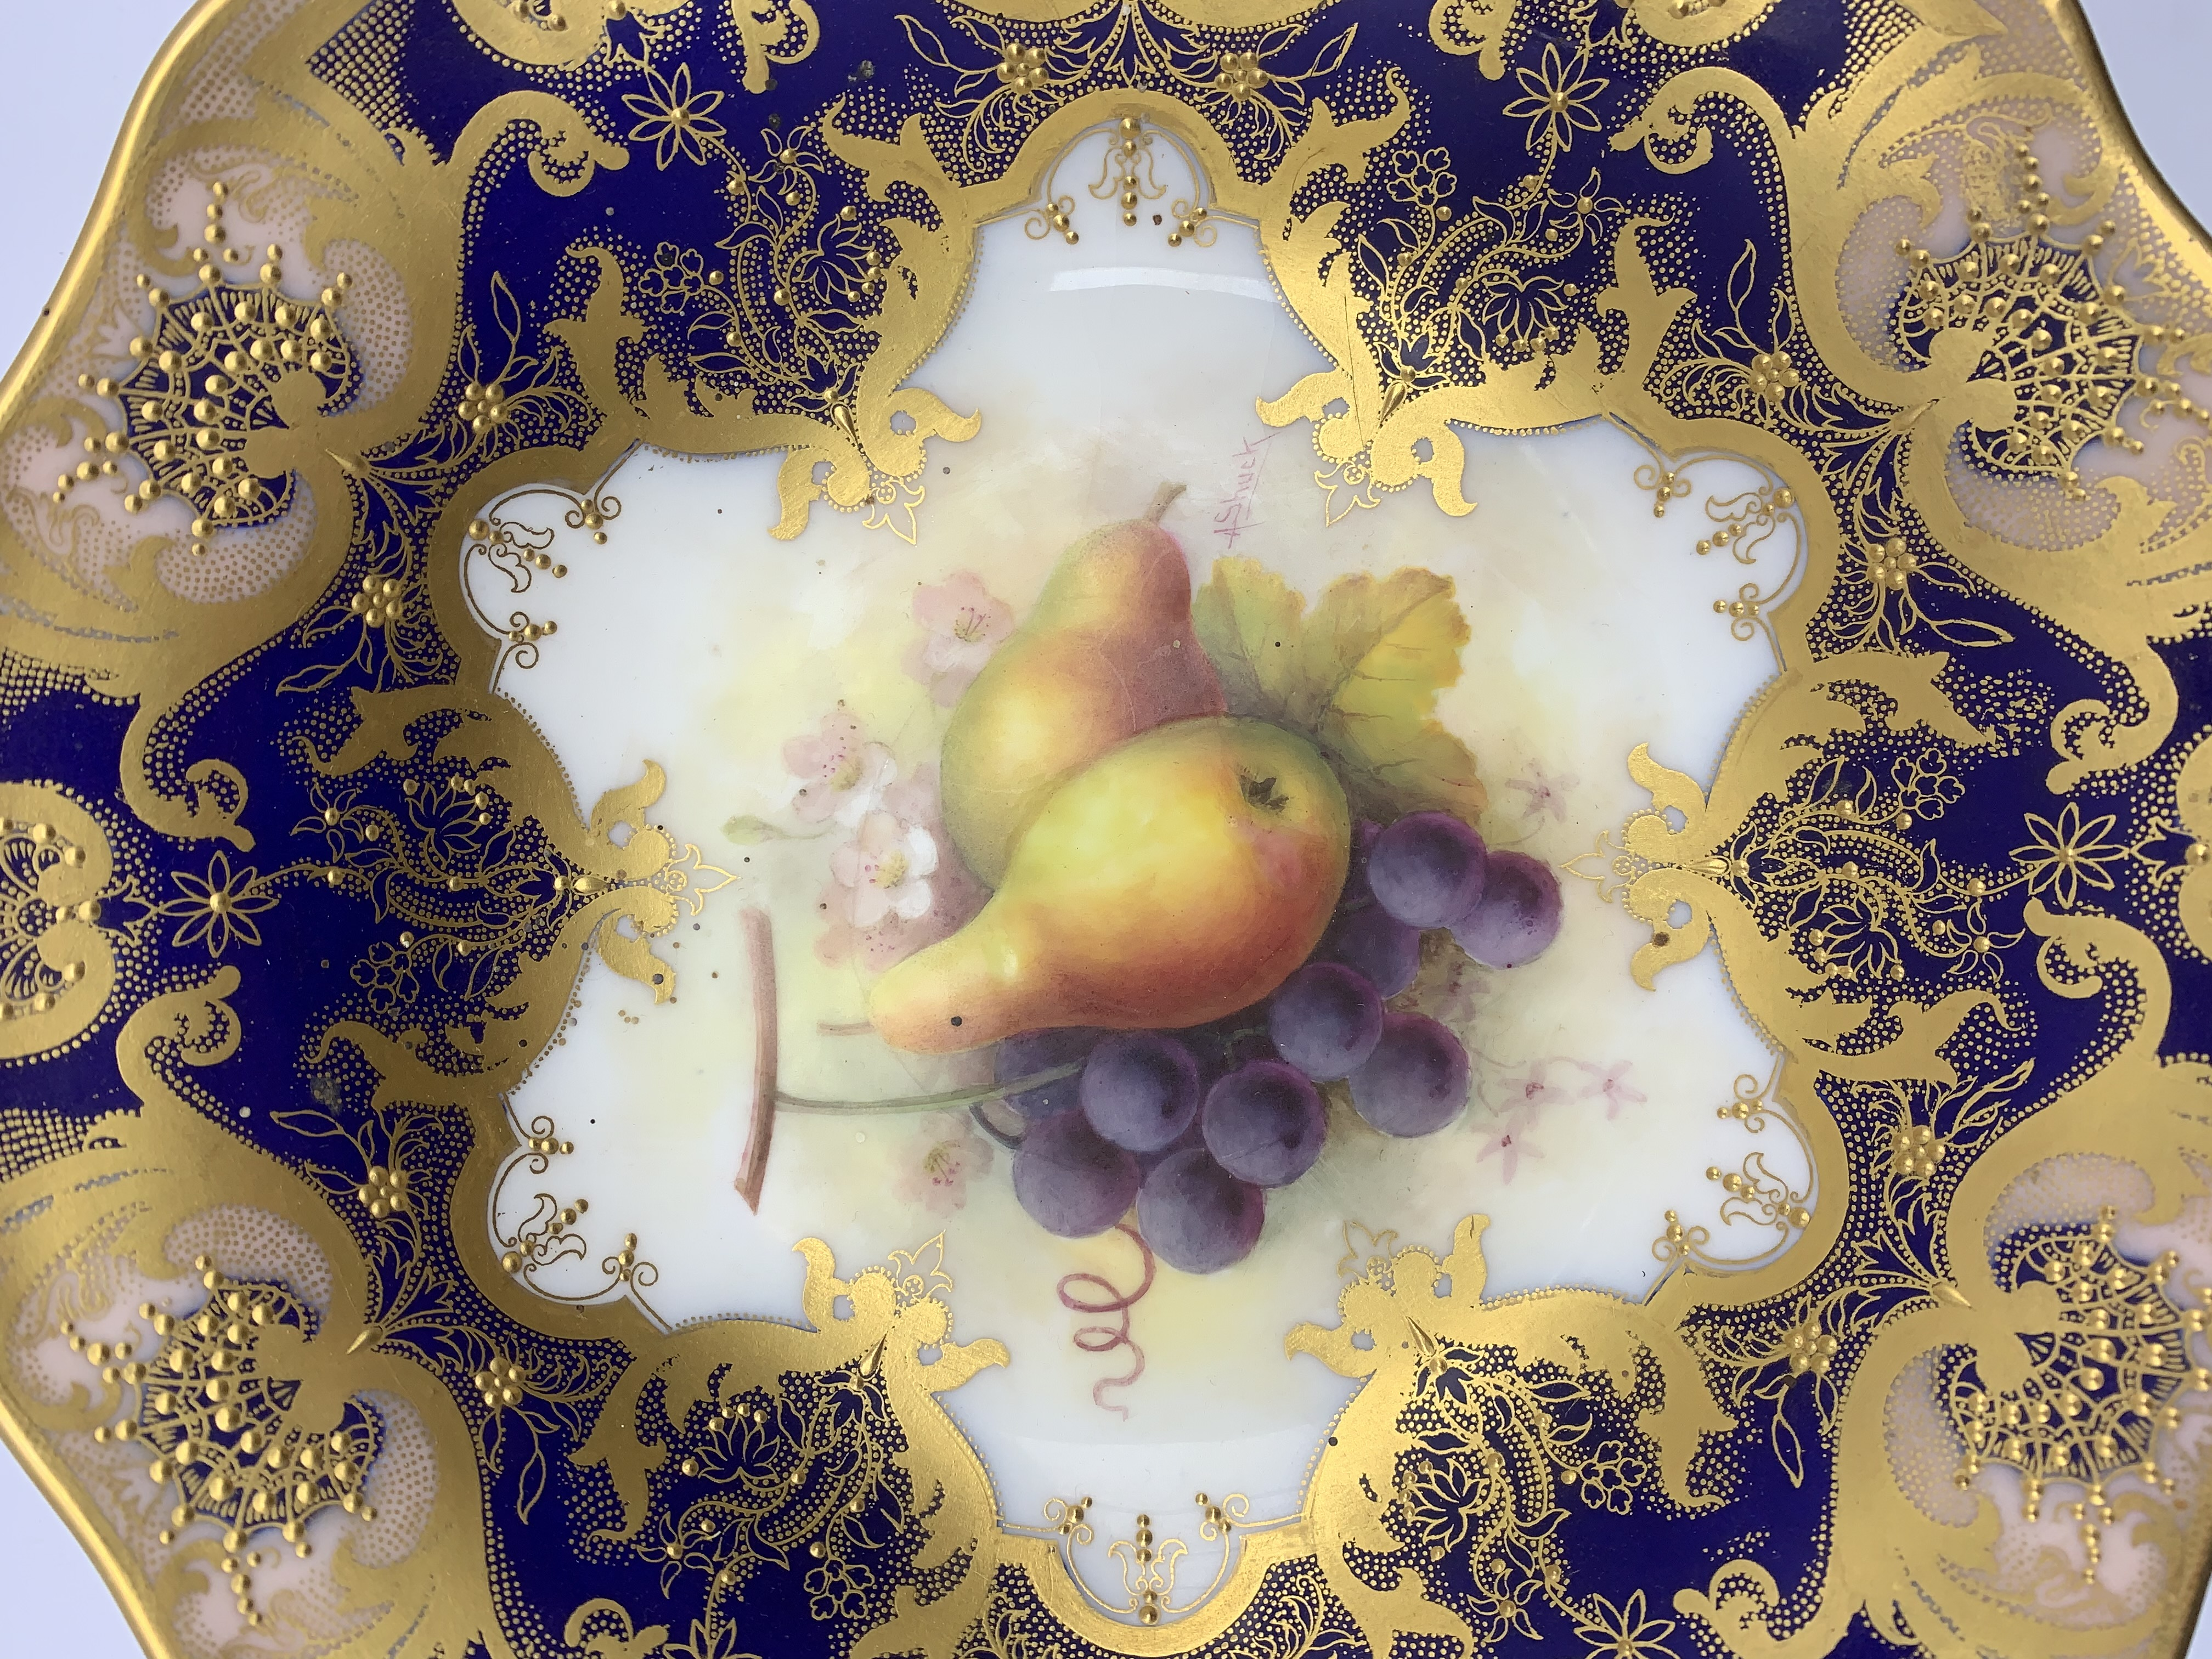 Royal Worcester porcelain twin-handled comport painted by Albert Shuck, signed, with grapes and pear - Image 5 of 7